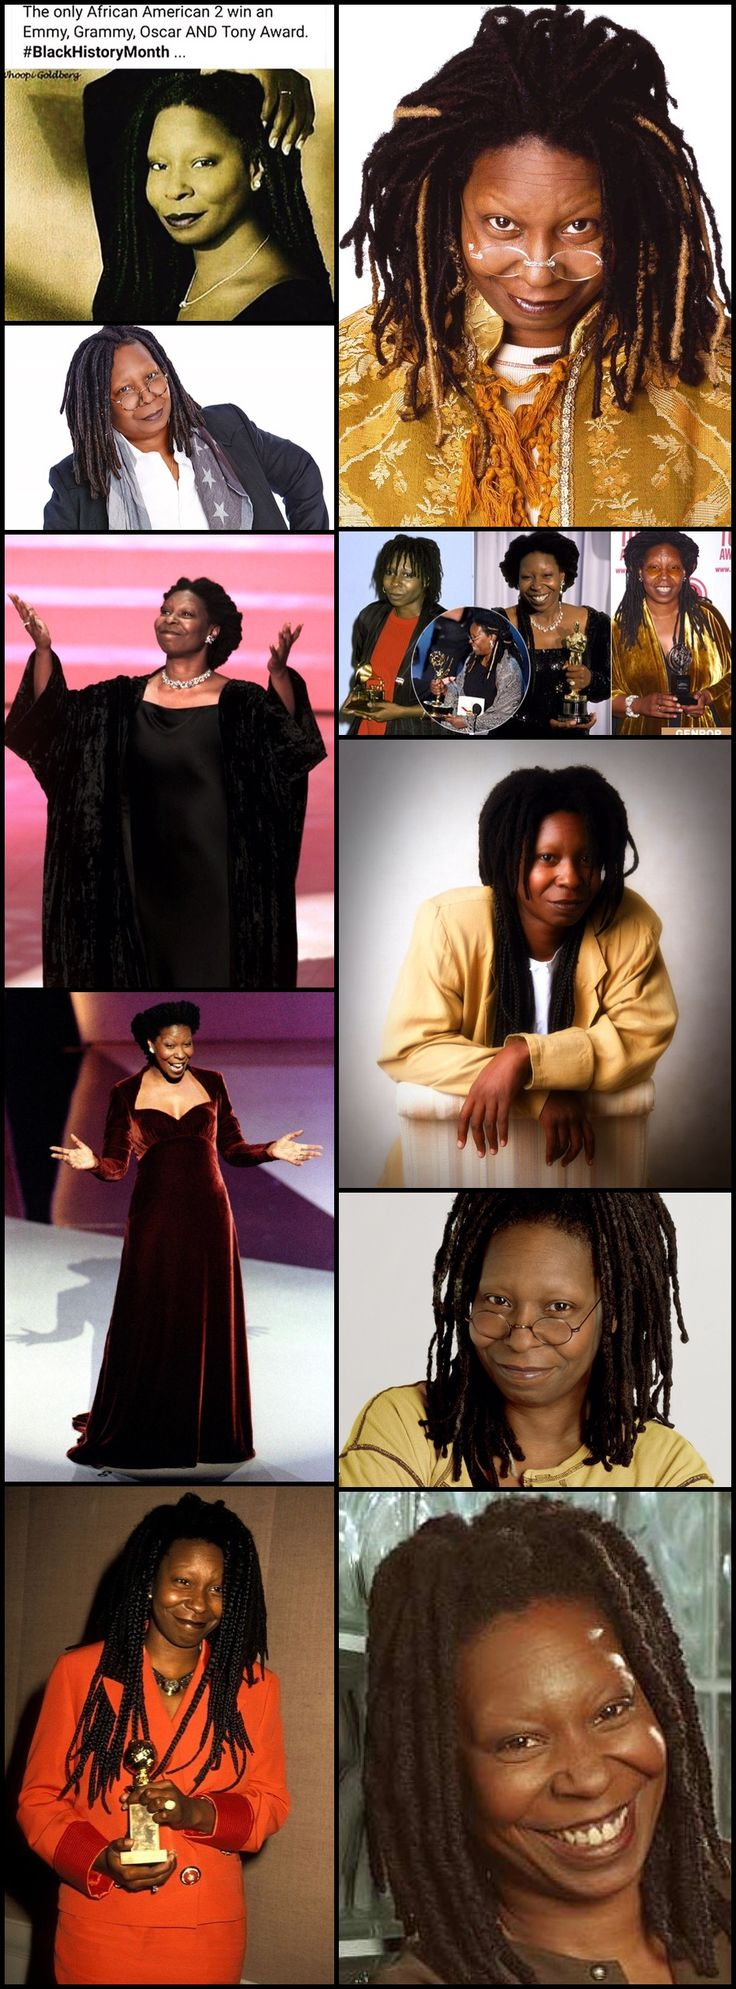 "Whoopi Goldberg (born 1955), is the first and only African American to receive Emmy, Grammy, Oscar, and Tony (EGOT) awards. She received her fourth distinct award in 2002. Between 1985 and 2009, Goldberg received a total of 6 awards. Goldberg is the most recent EGOT ""winner"", the first to win the Oscar as their second award, and the first to win two of their awards in the same year (she won both her first Daytime Emmy and her Tony in 2002)."